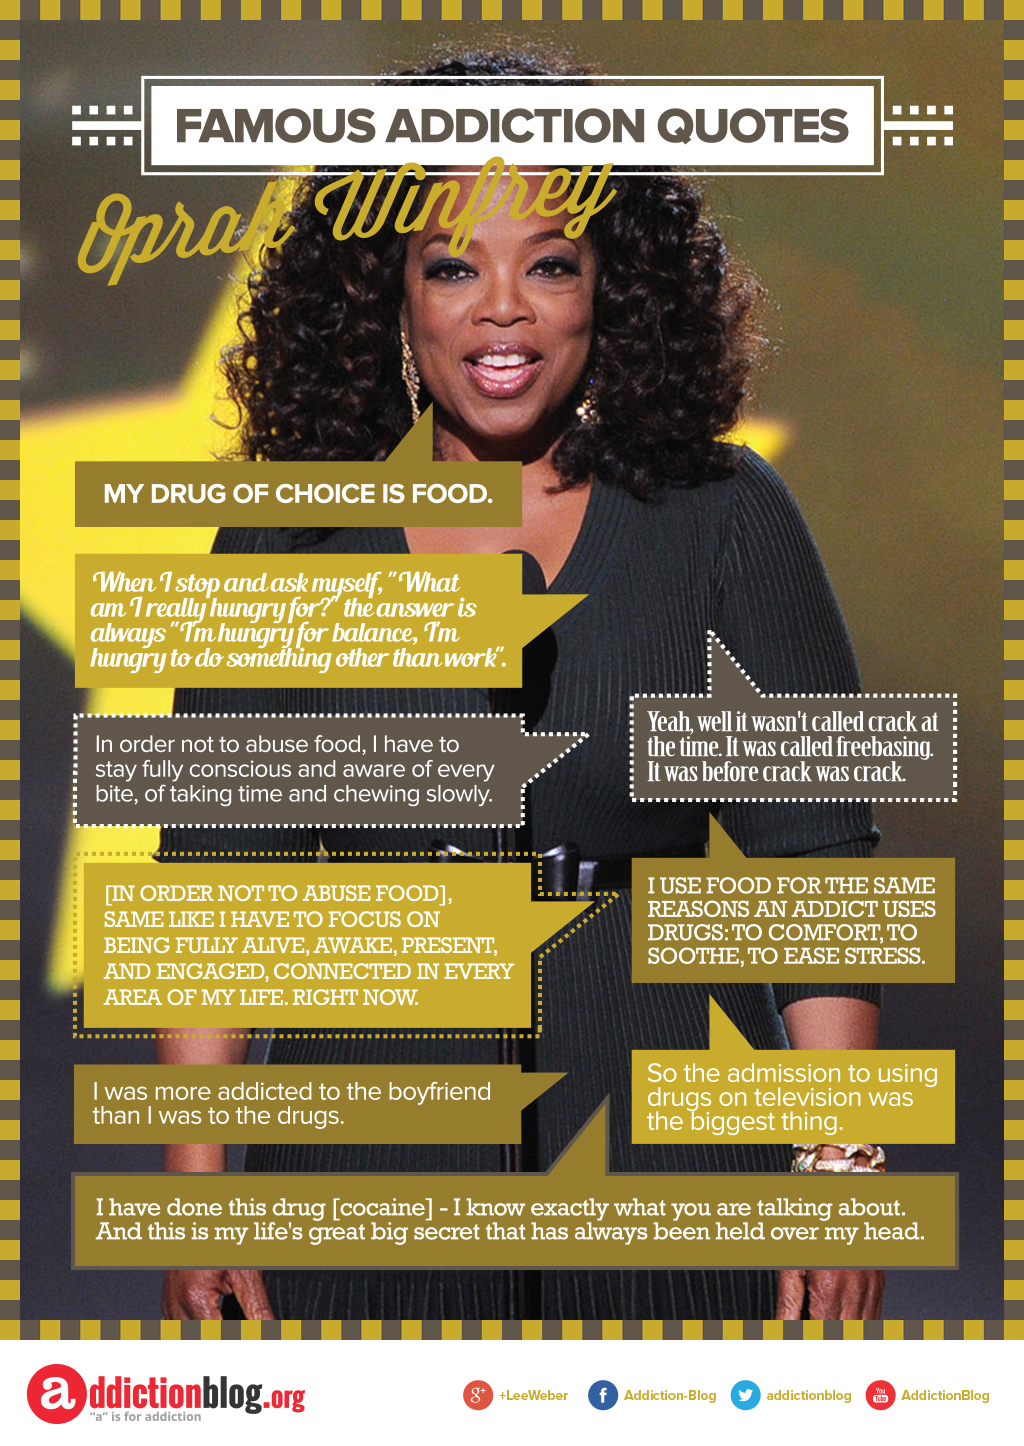 Oprah Winfery's quotes on food addiction (INFOGRAPHIC)